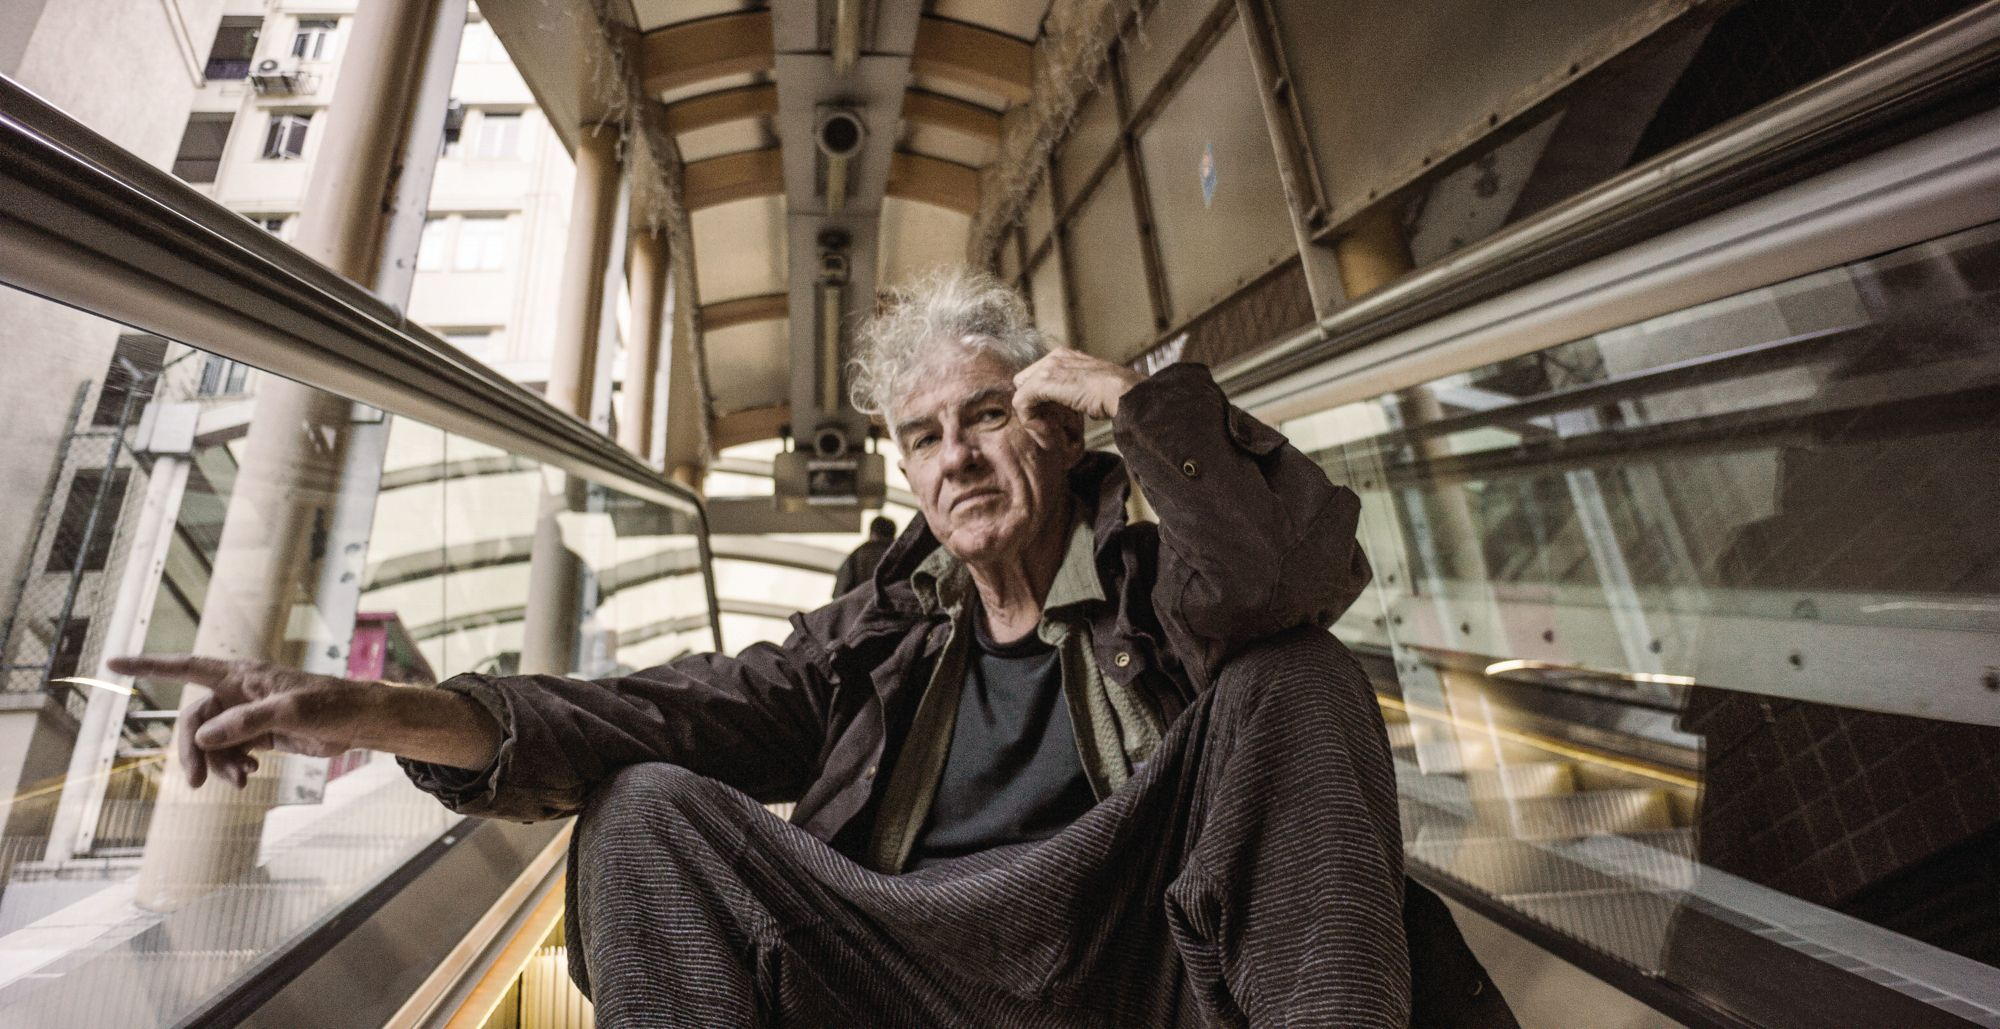 Cinematographer Christopher Doyle Reflects On His 40-Year Career And What's Next For Him